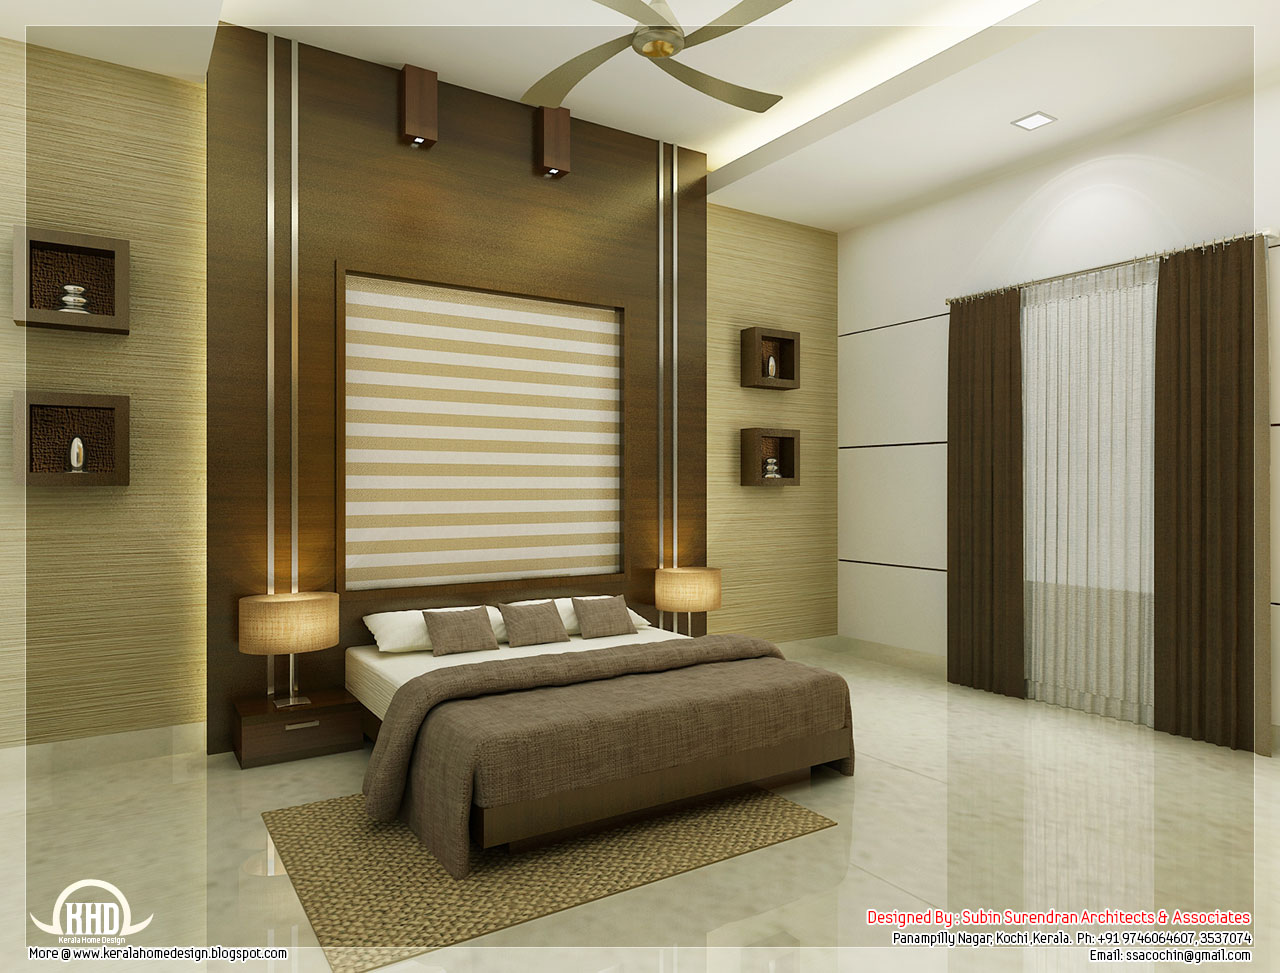 Beautiful bedroom interior designs kerala house design for Bedroom wallpaper designs india